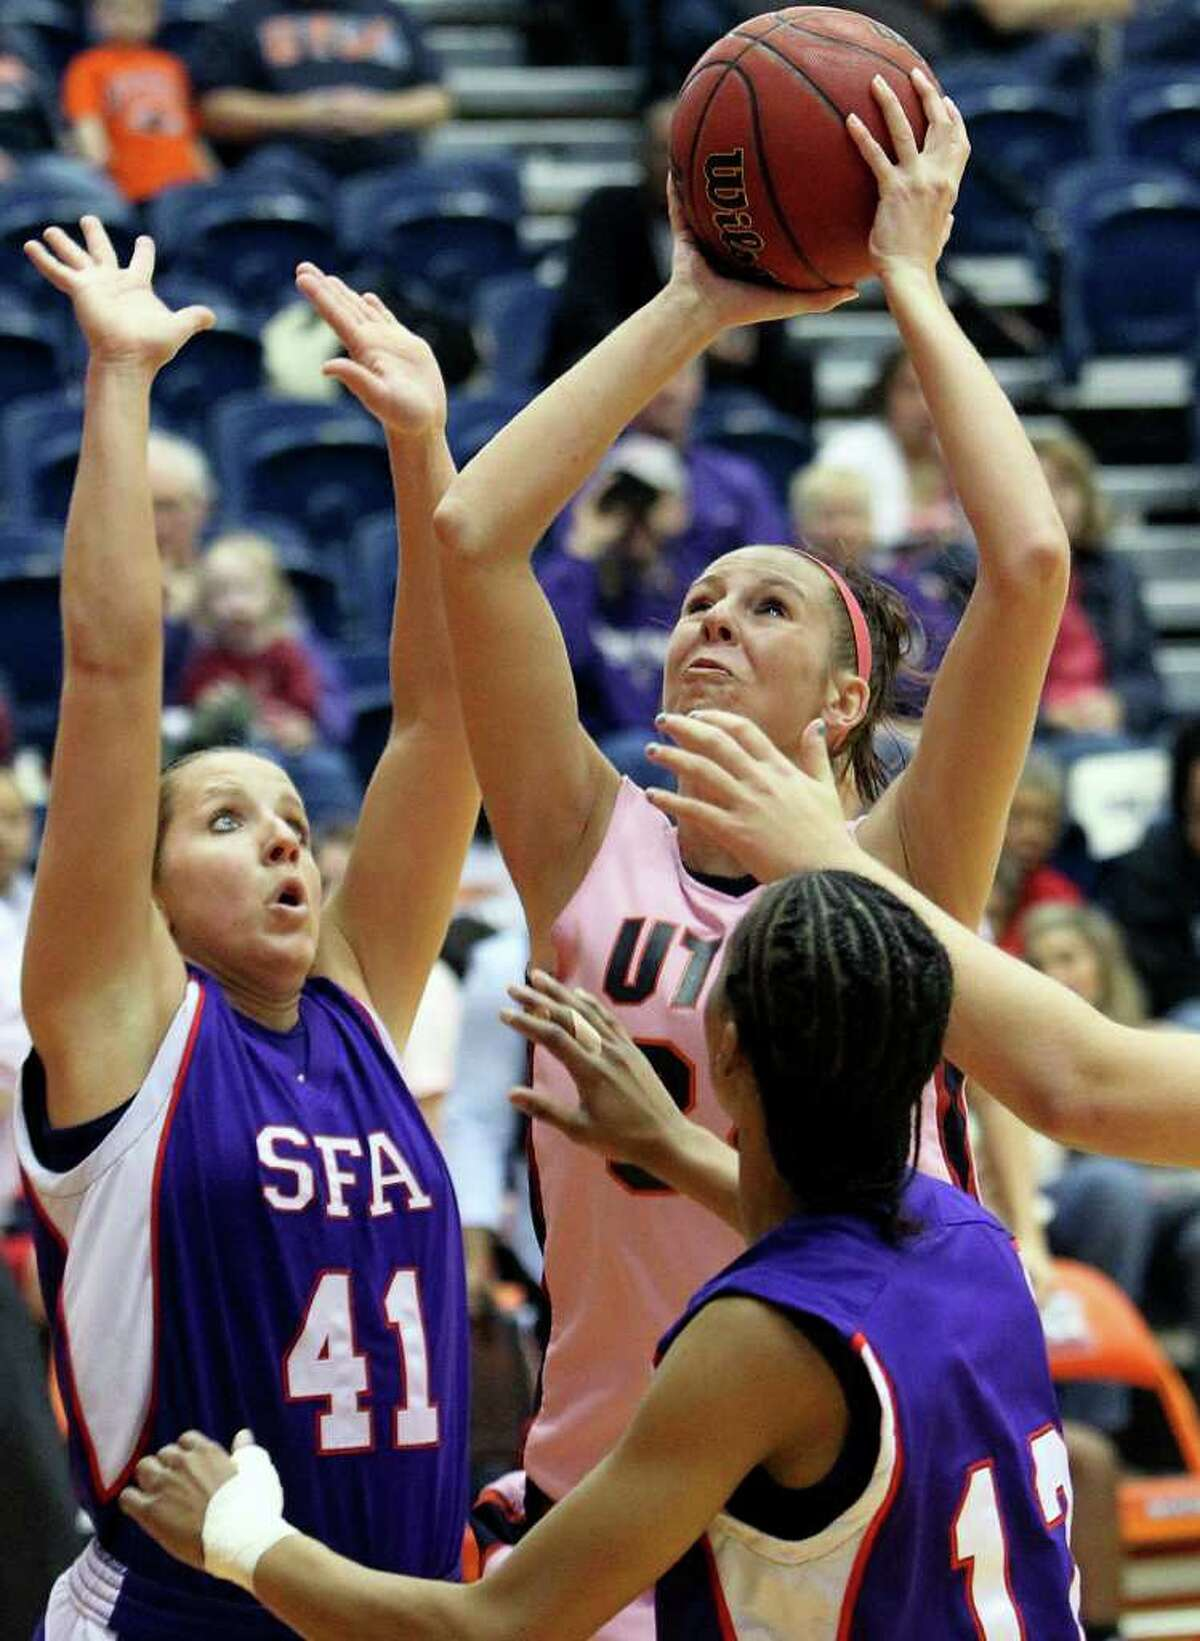 SPORTS Lyndi Thorman puts the ball up in a crowd of SFA defenders including Cheyenne Berry (12) and Ebony alexander as the UTSA women play Stephen F. Austin at the UTSA Convocation Center on February 12, 2011. Tom Reel/Staff